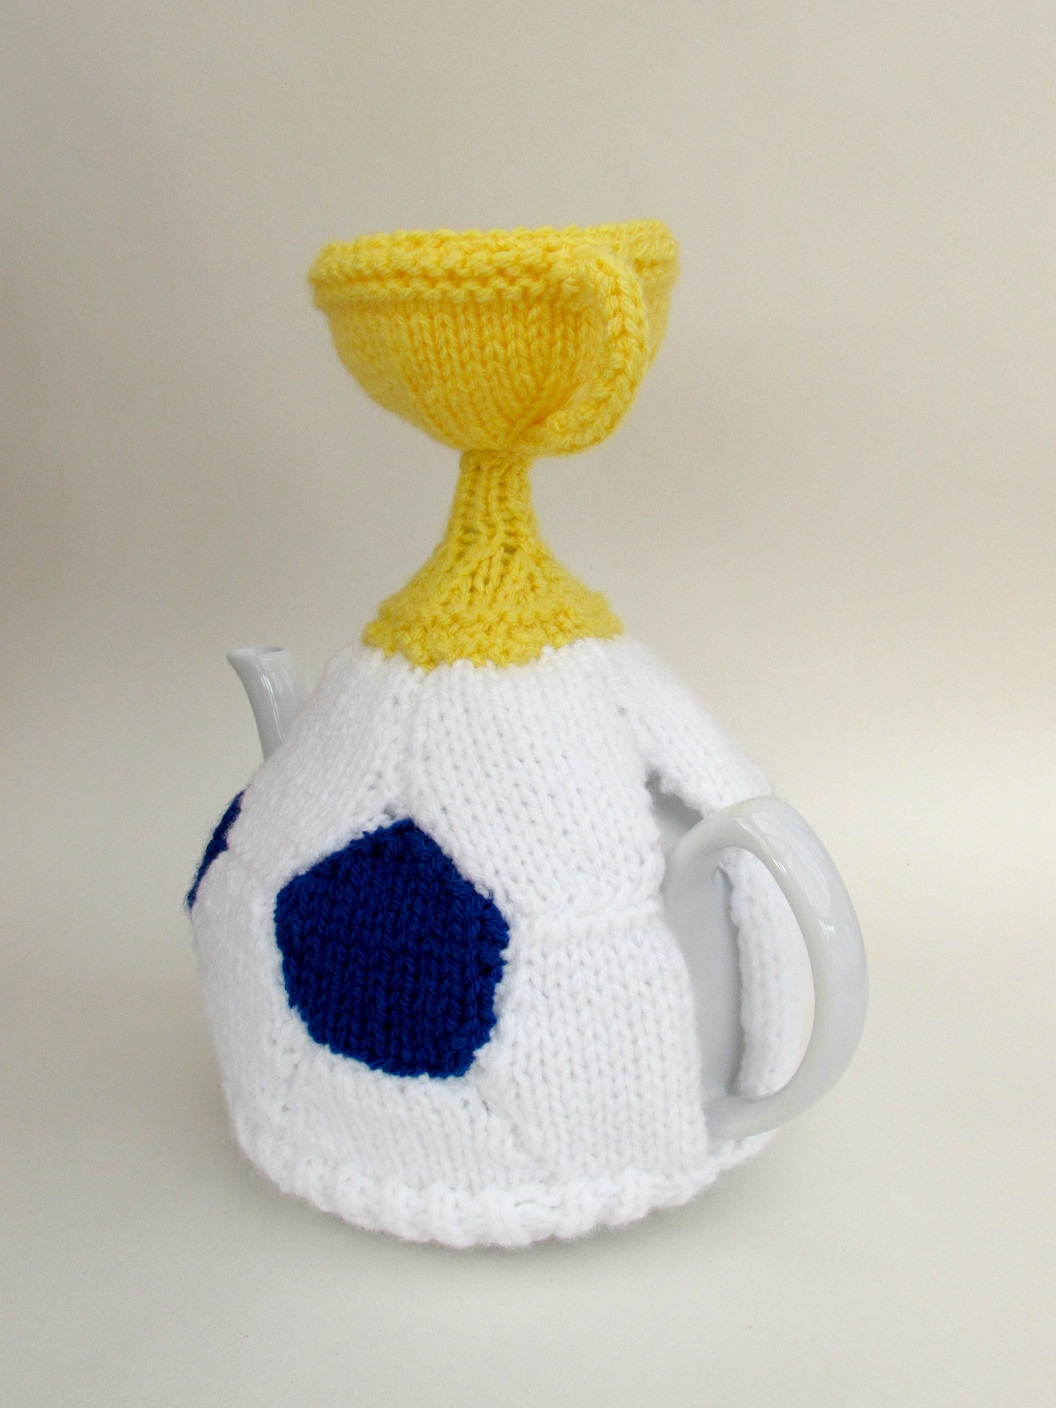 Football and World Cup Trophy knitting pattern